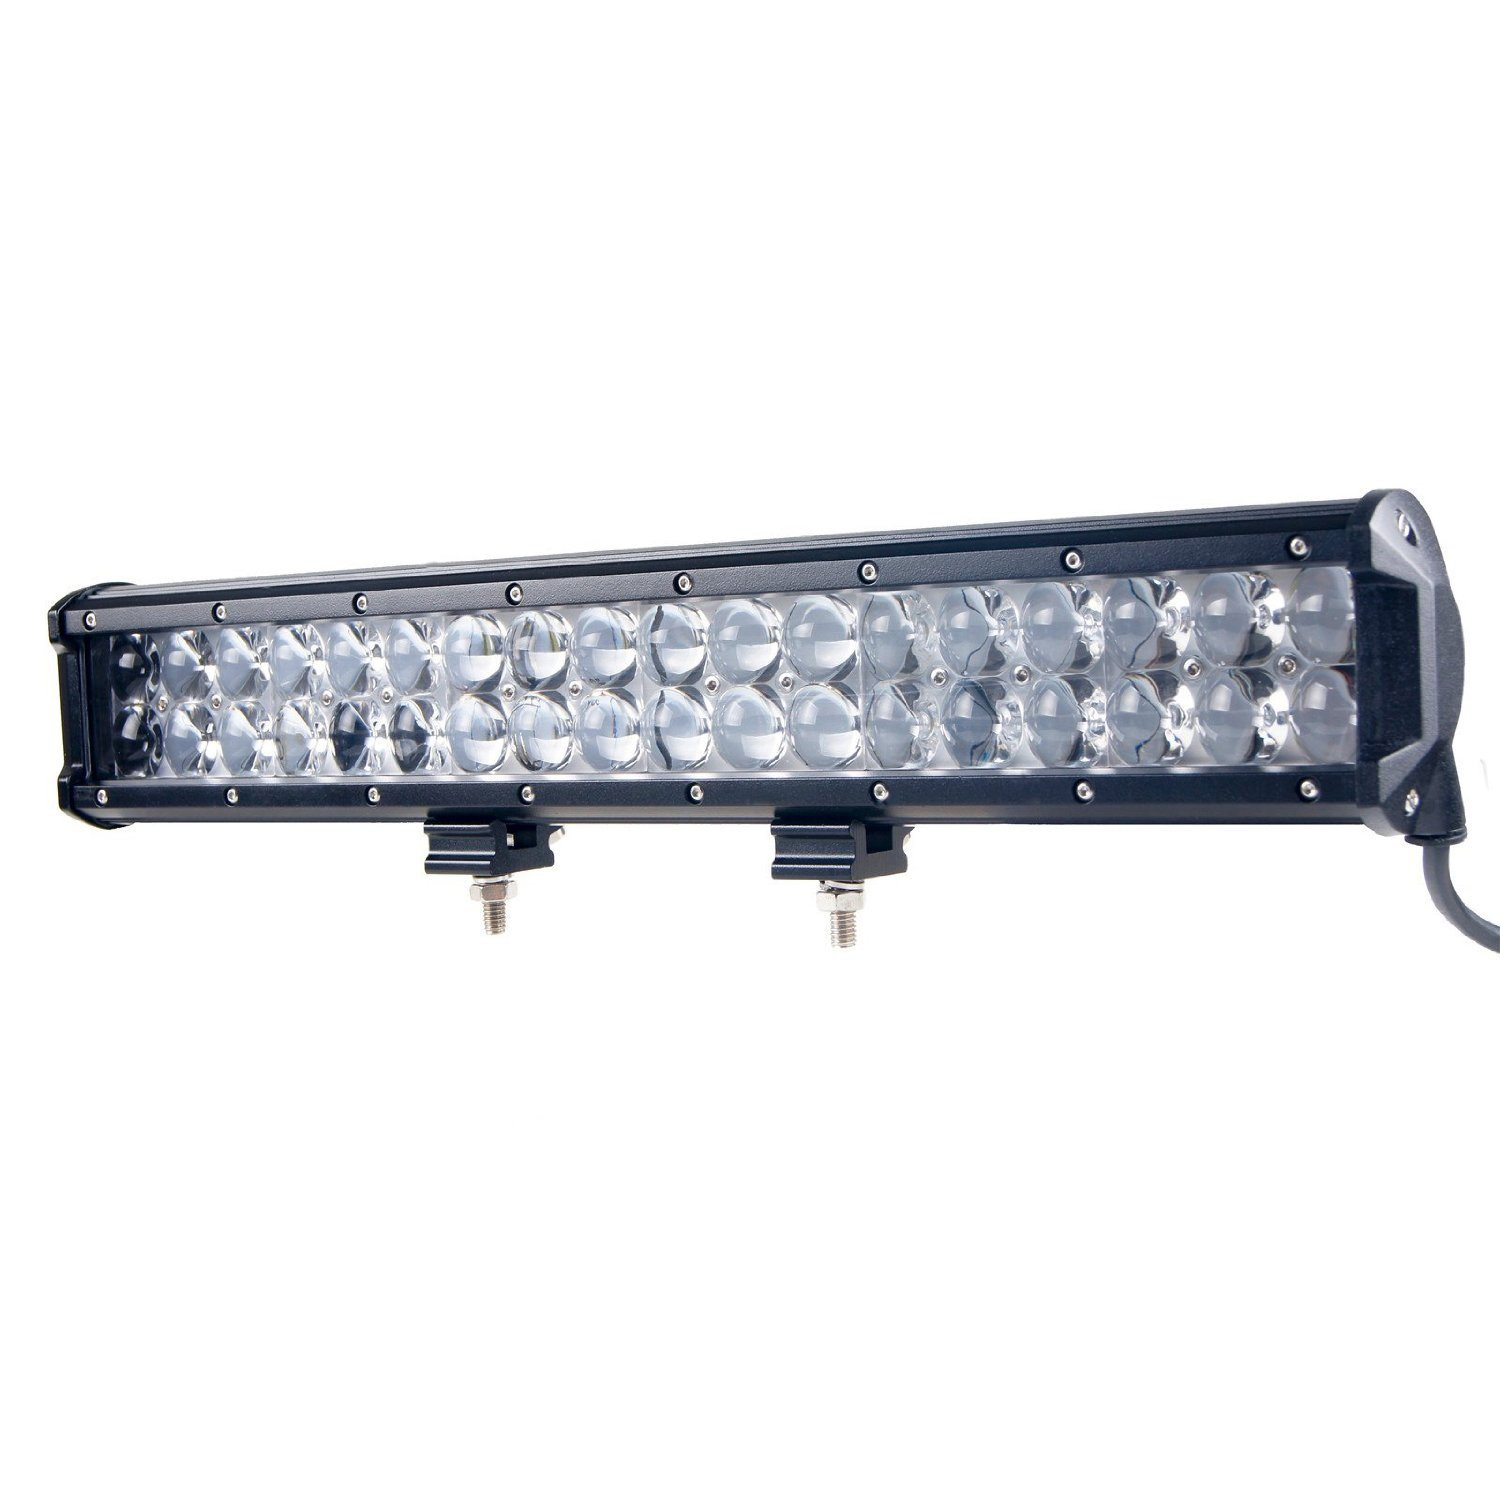 108W Lightweight 4D LED Professional Work Light Panel With High Output Capacity Outdoors Lights